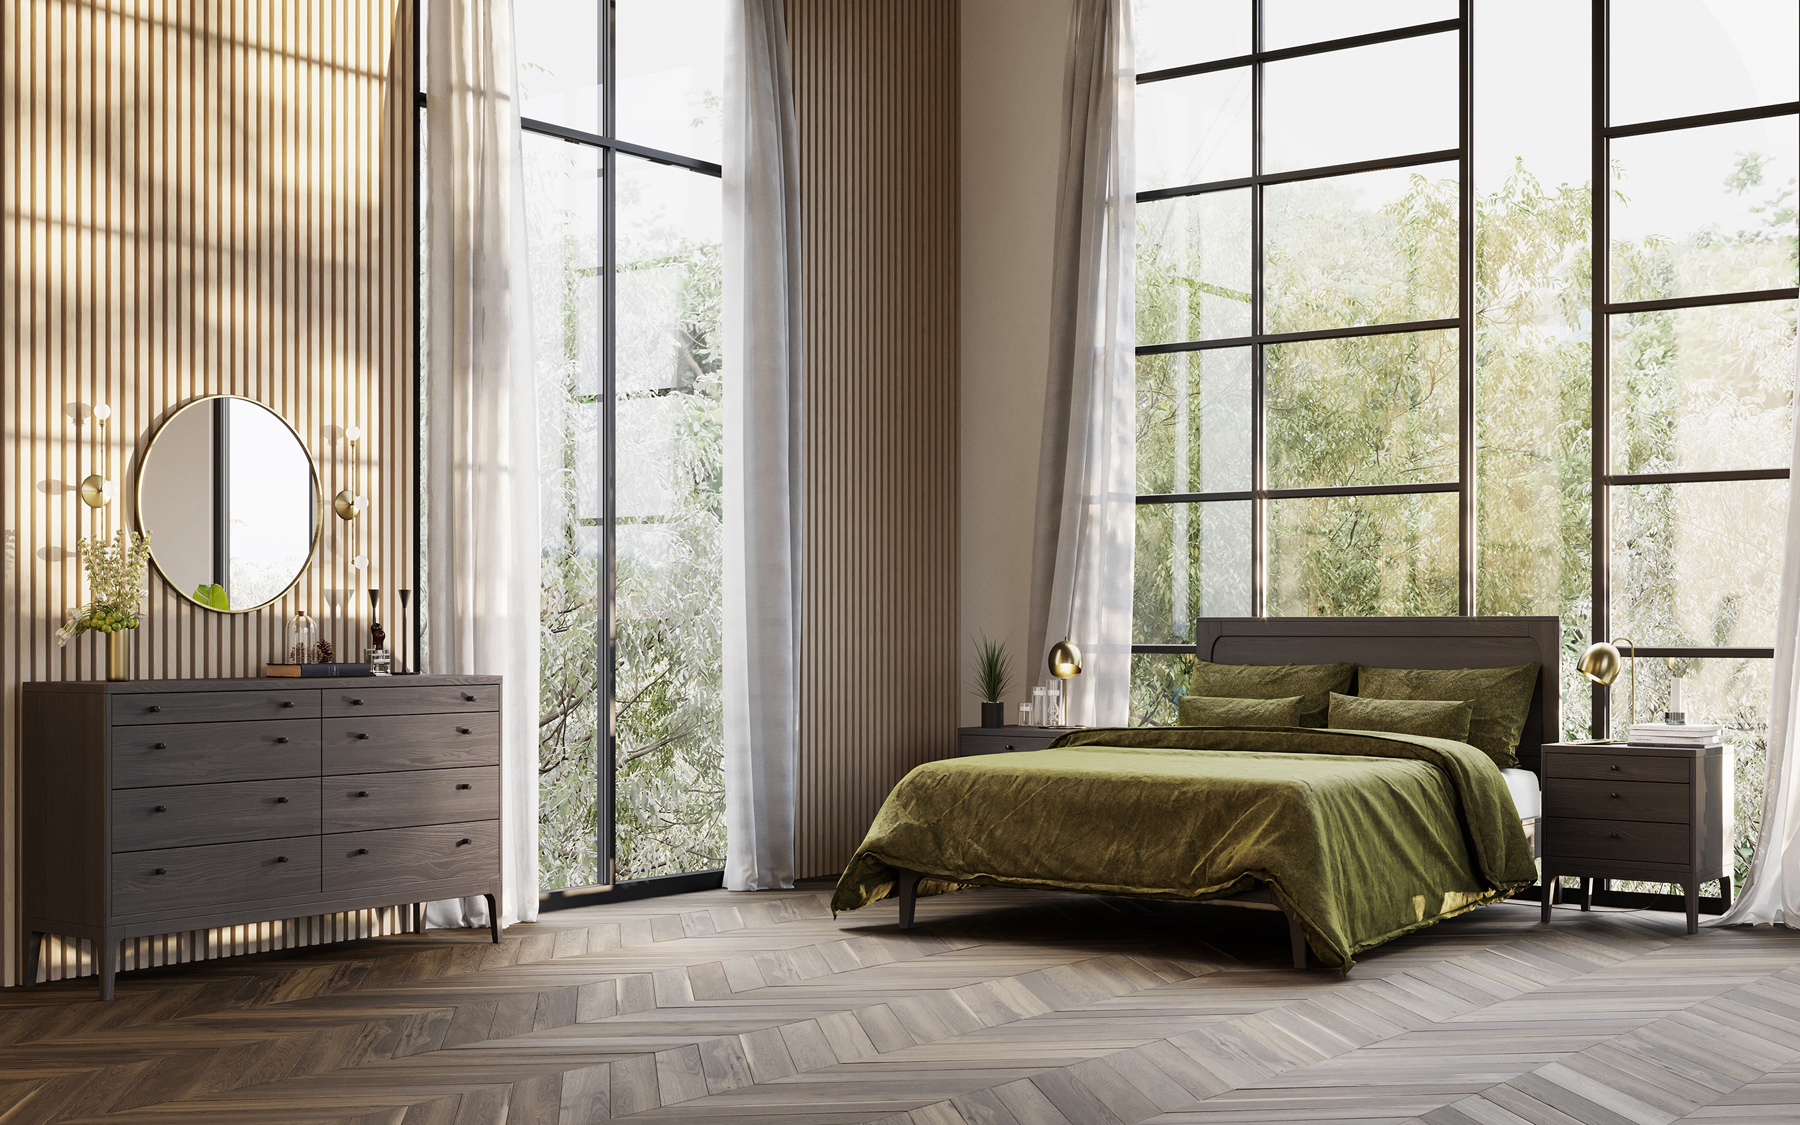 The Brooklyn bedroom collection offers a simple, well-proportioned modern look.